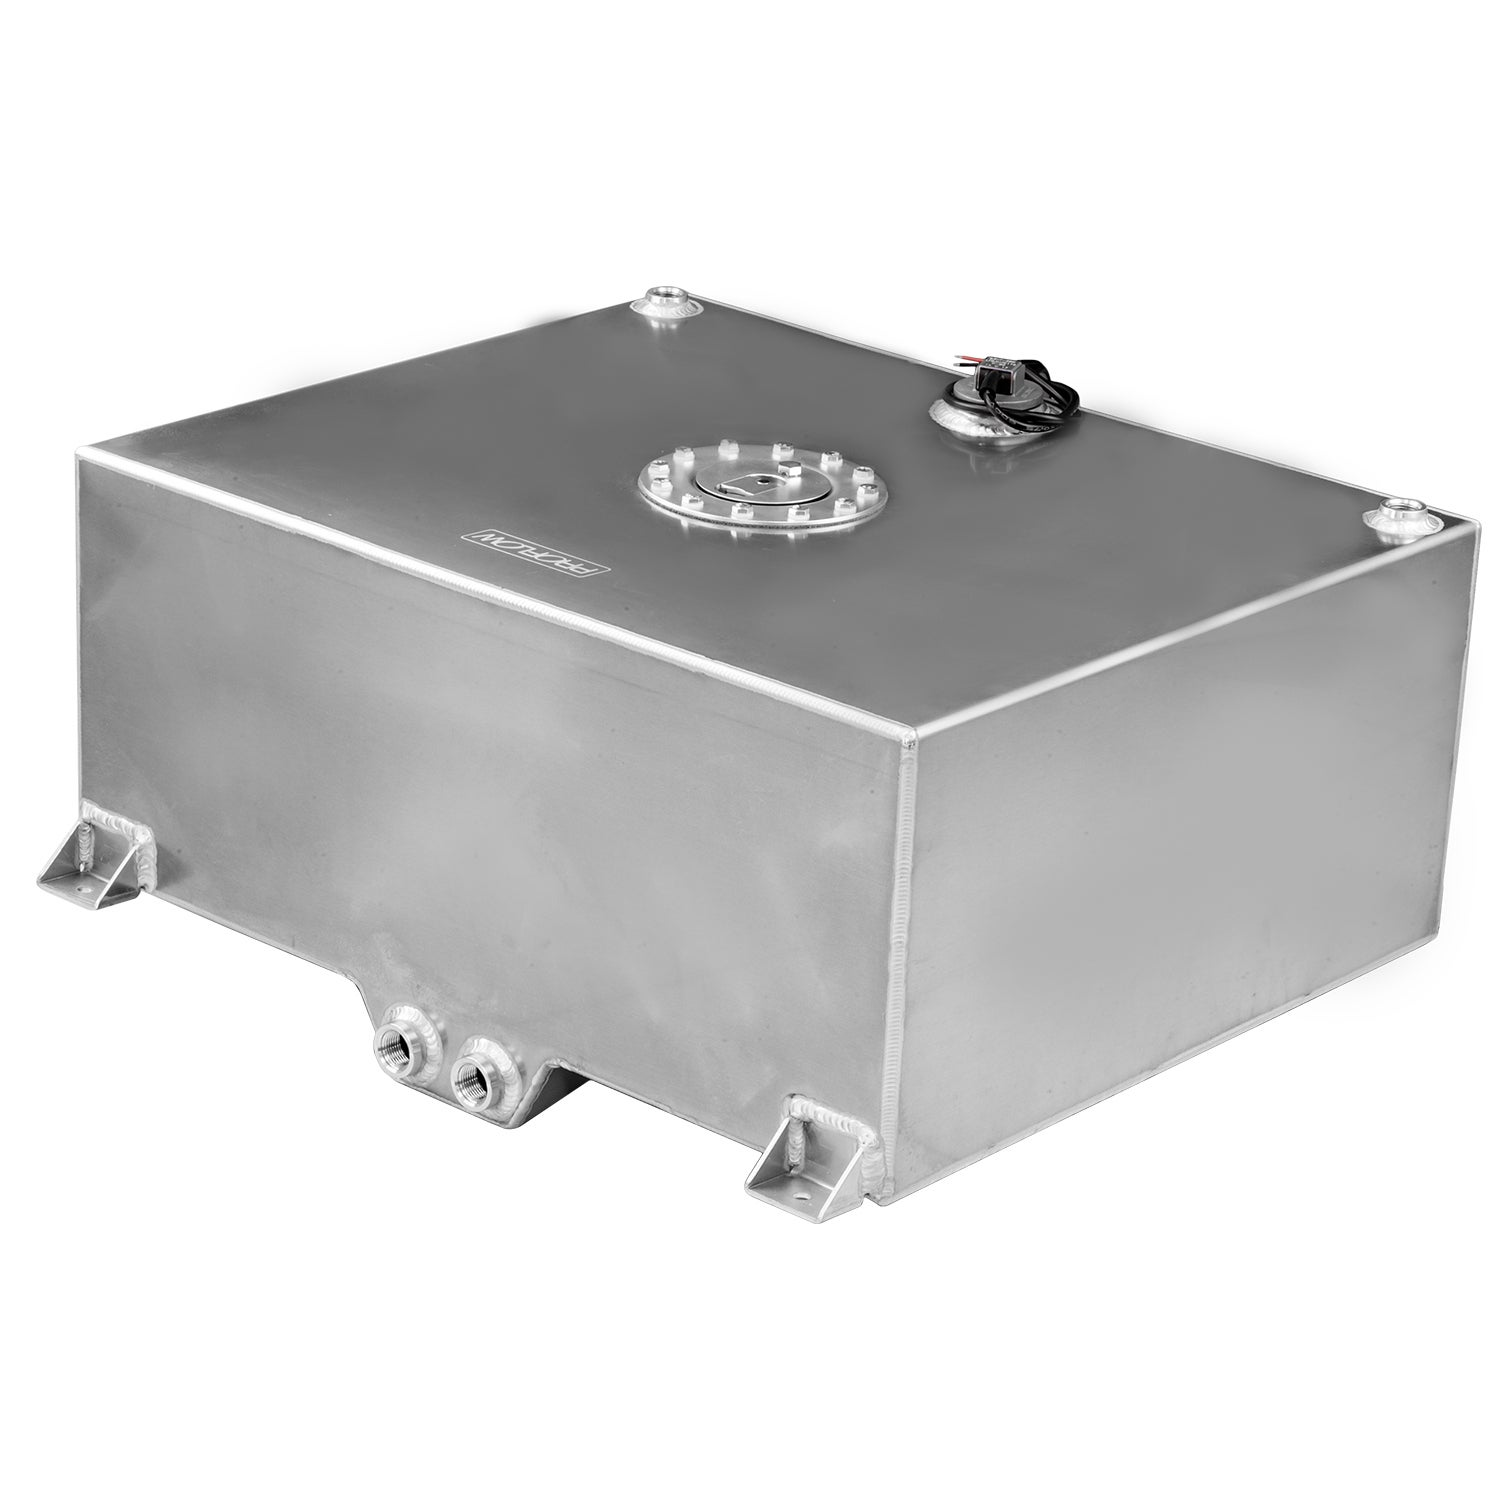 Proflow Fuel Cell Tank 15g 57 Aluminium Natural 510 x 4600 x 260mm With Sender Two -10 AN Female Outlets Each